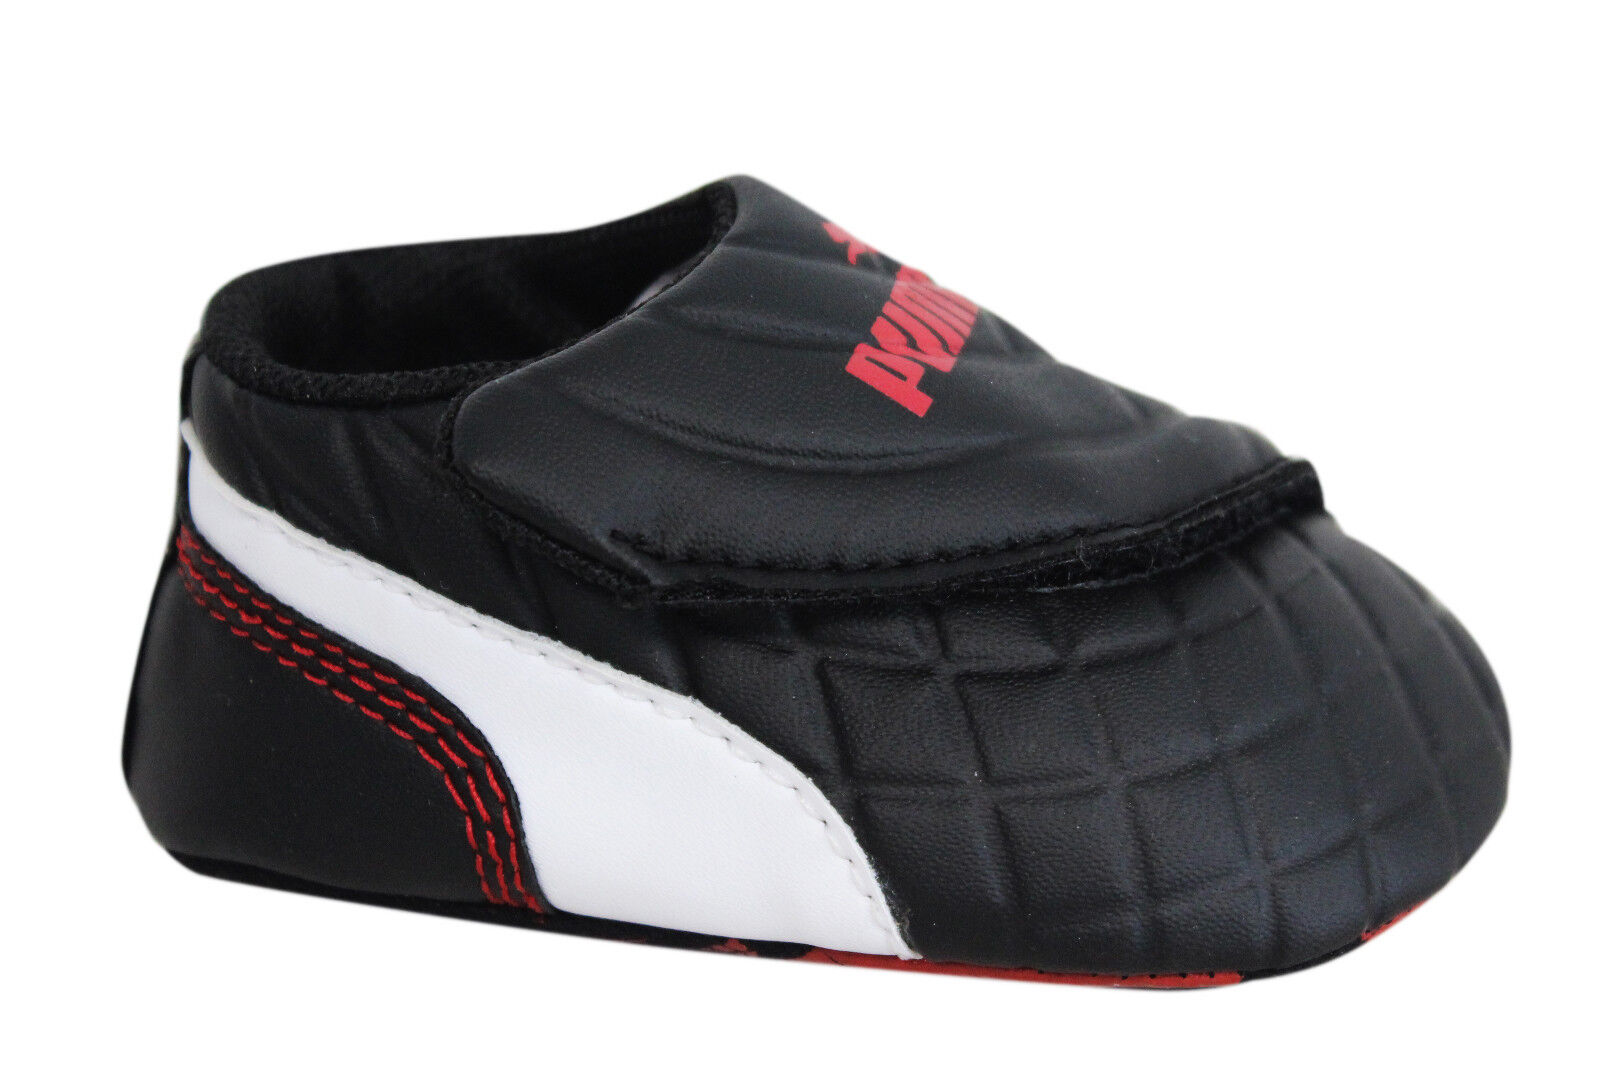 Puma Drift Cat 6 LW Crib Soft Sole Black Synthetic Baby Trainers 305184 01 EE9